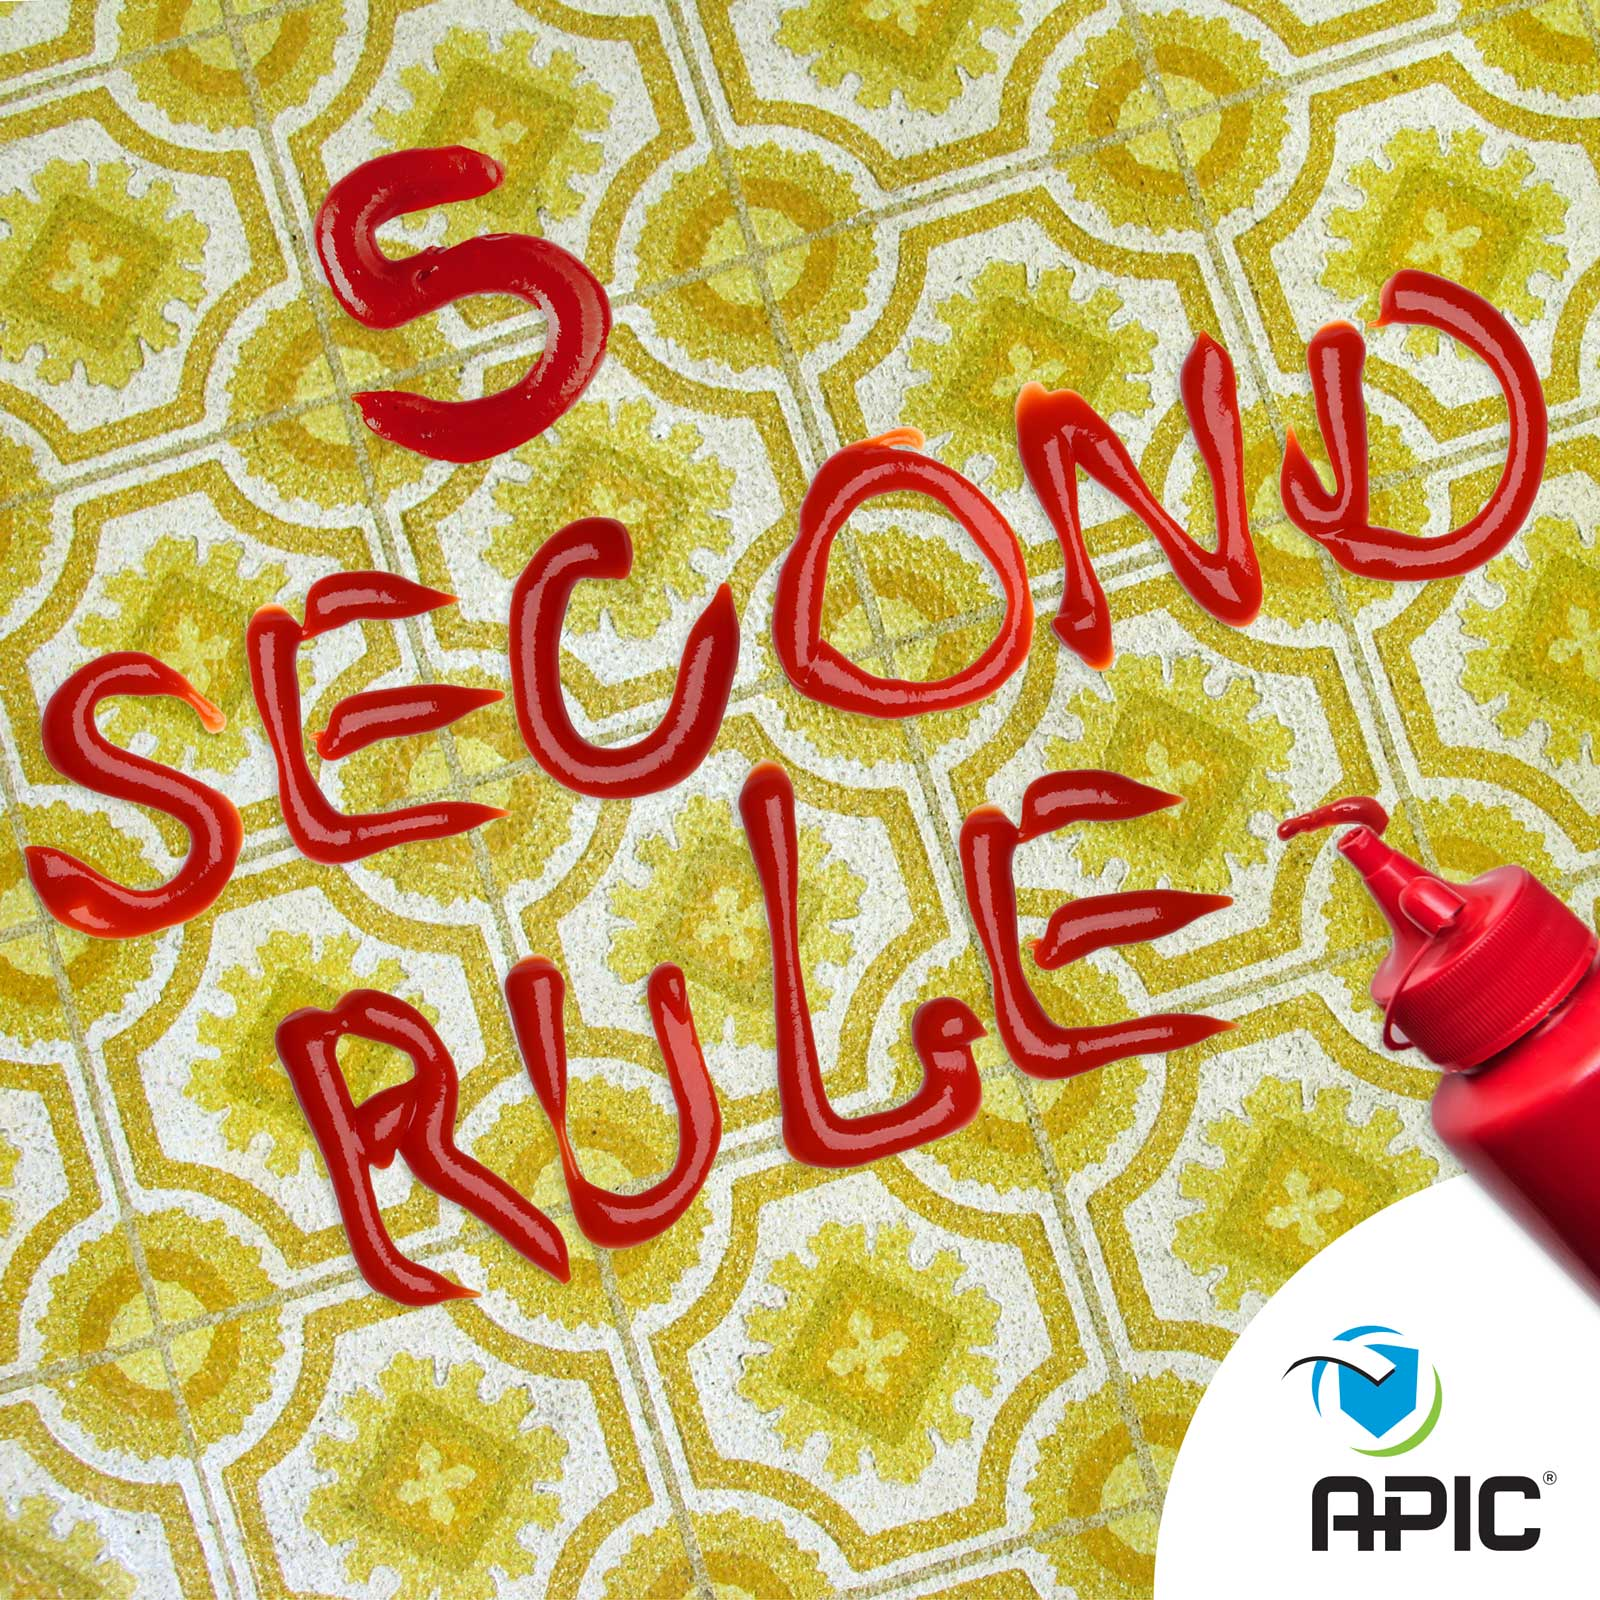 5 Second Rule Album Art